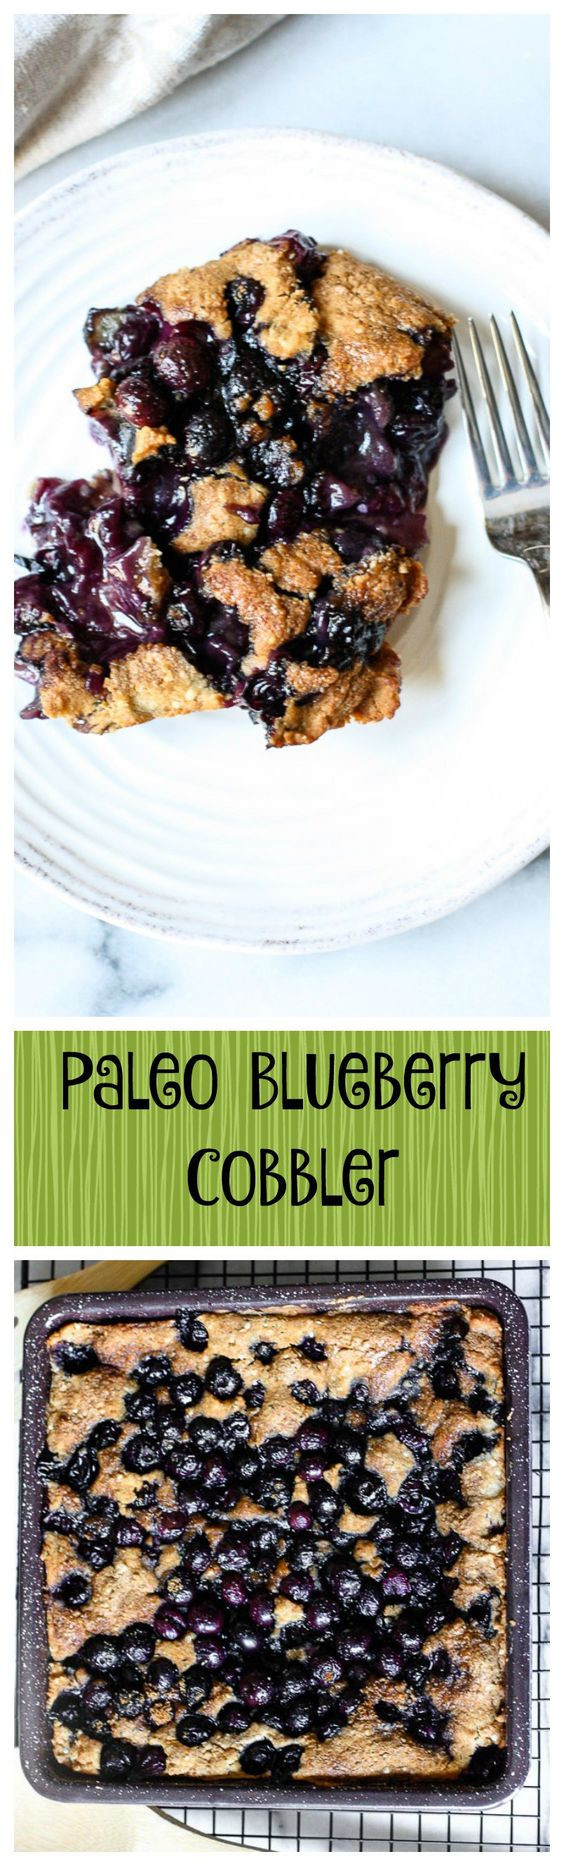 Paleo Blueberry Cobbler  Paleo Blueberry Cobbler Gluten Free Natural Holistic Life